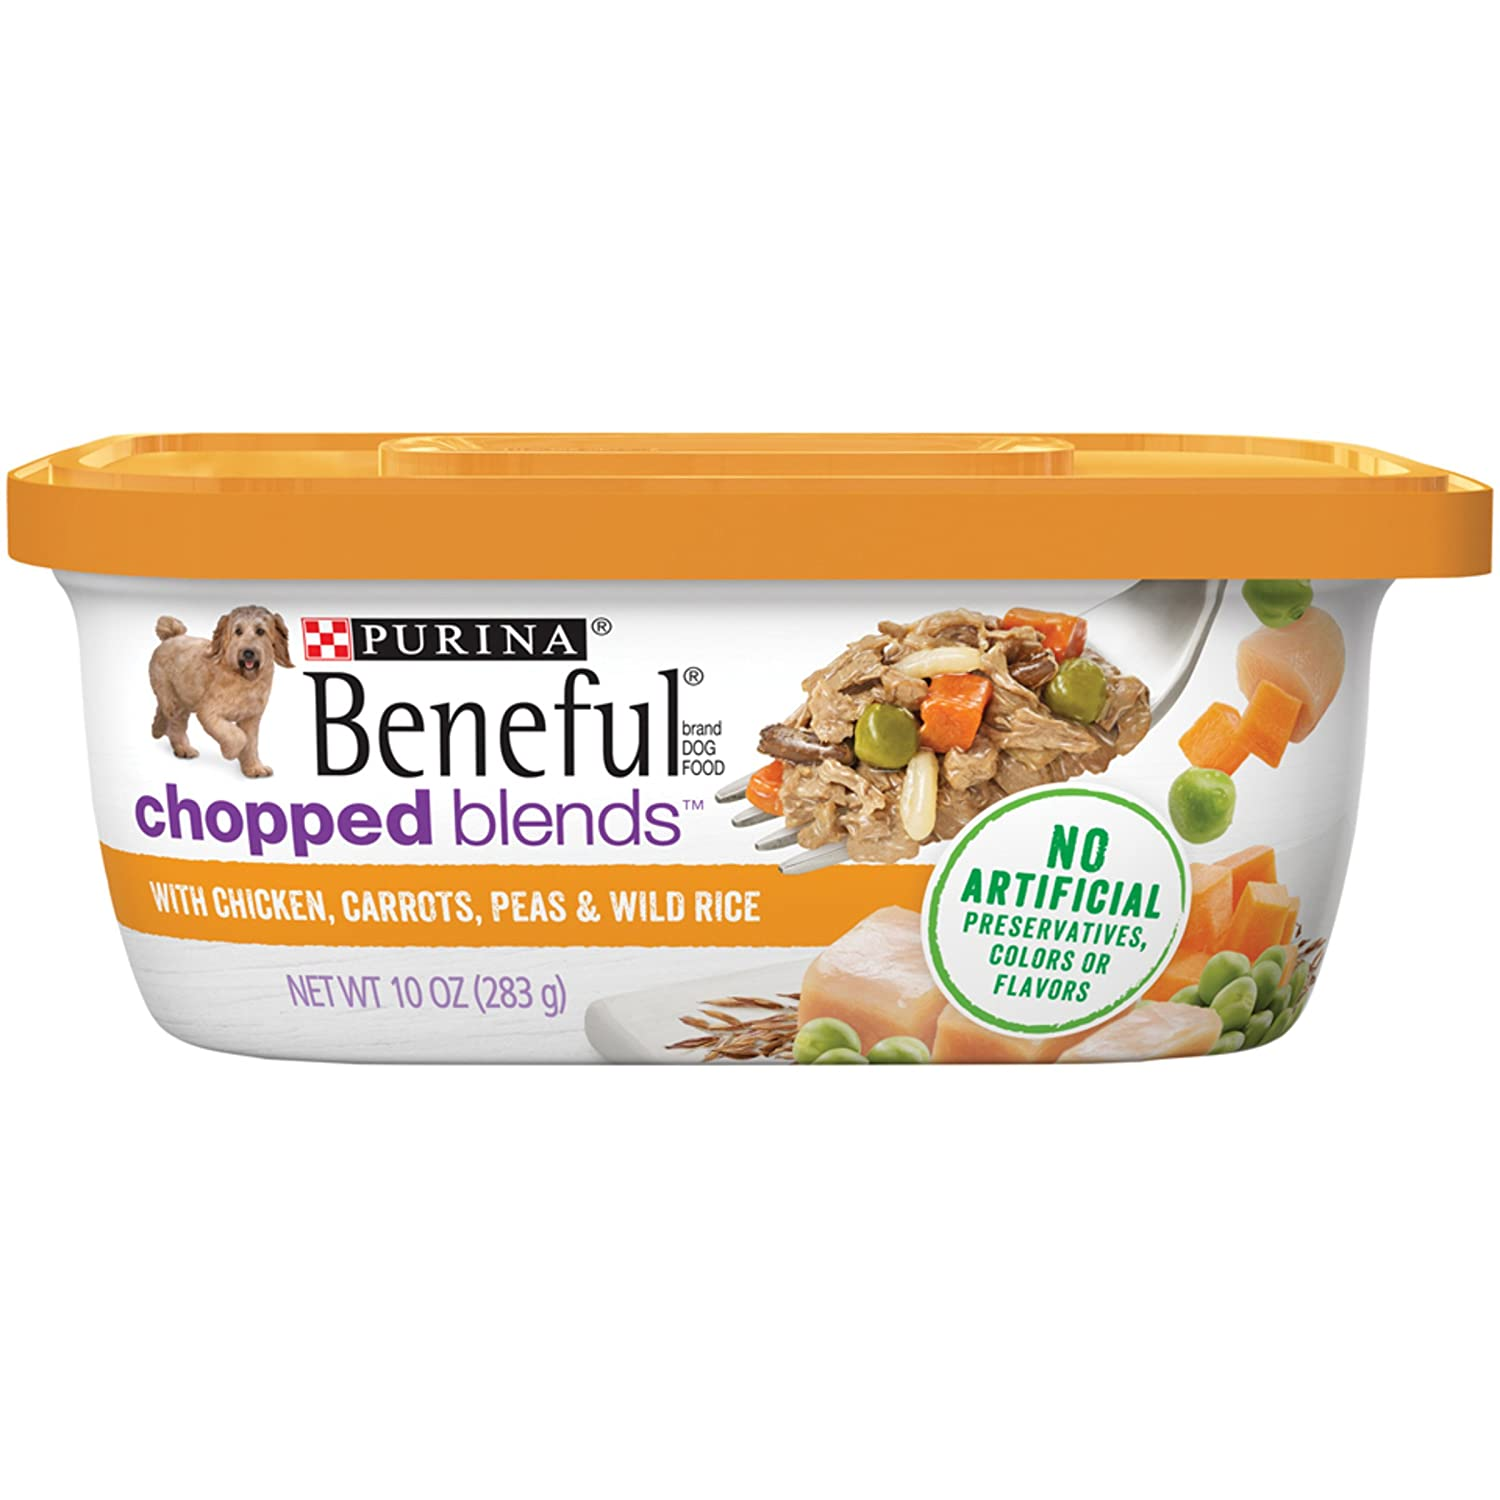 Amazon.com : Purina Beneful Chopped Blends with Chicken Carrots Peas ...